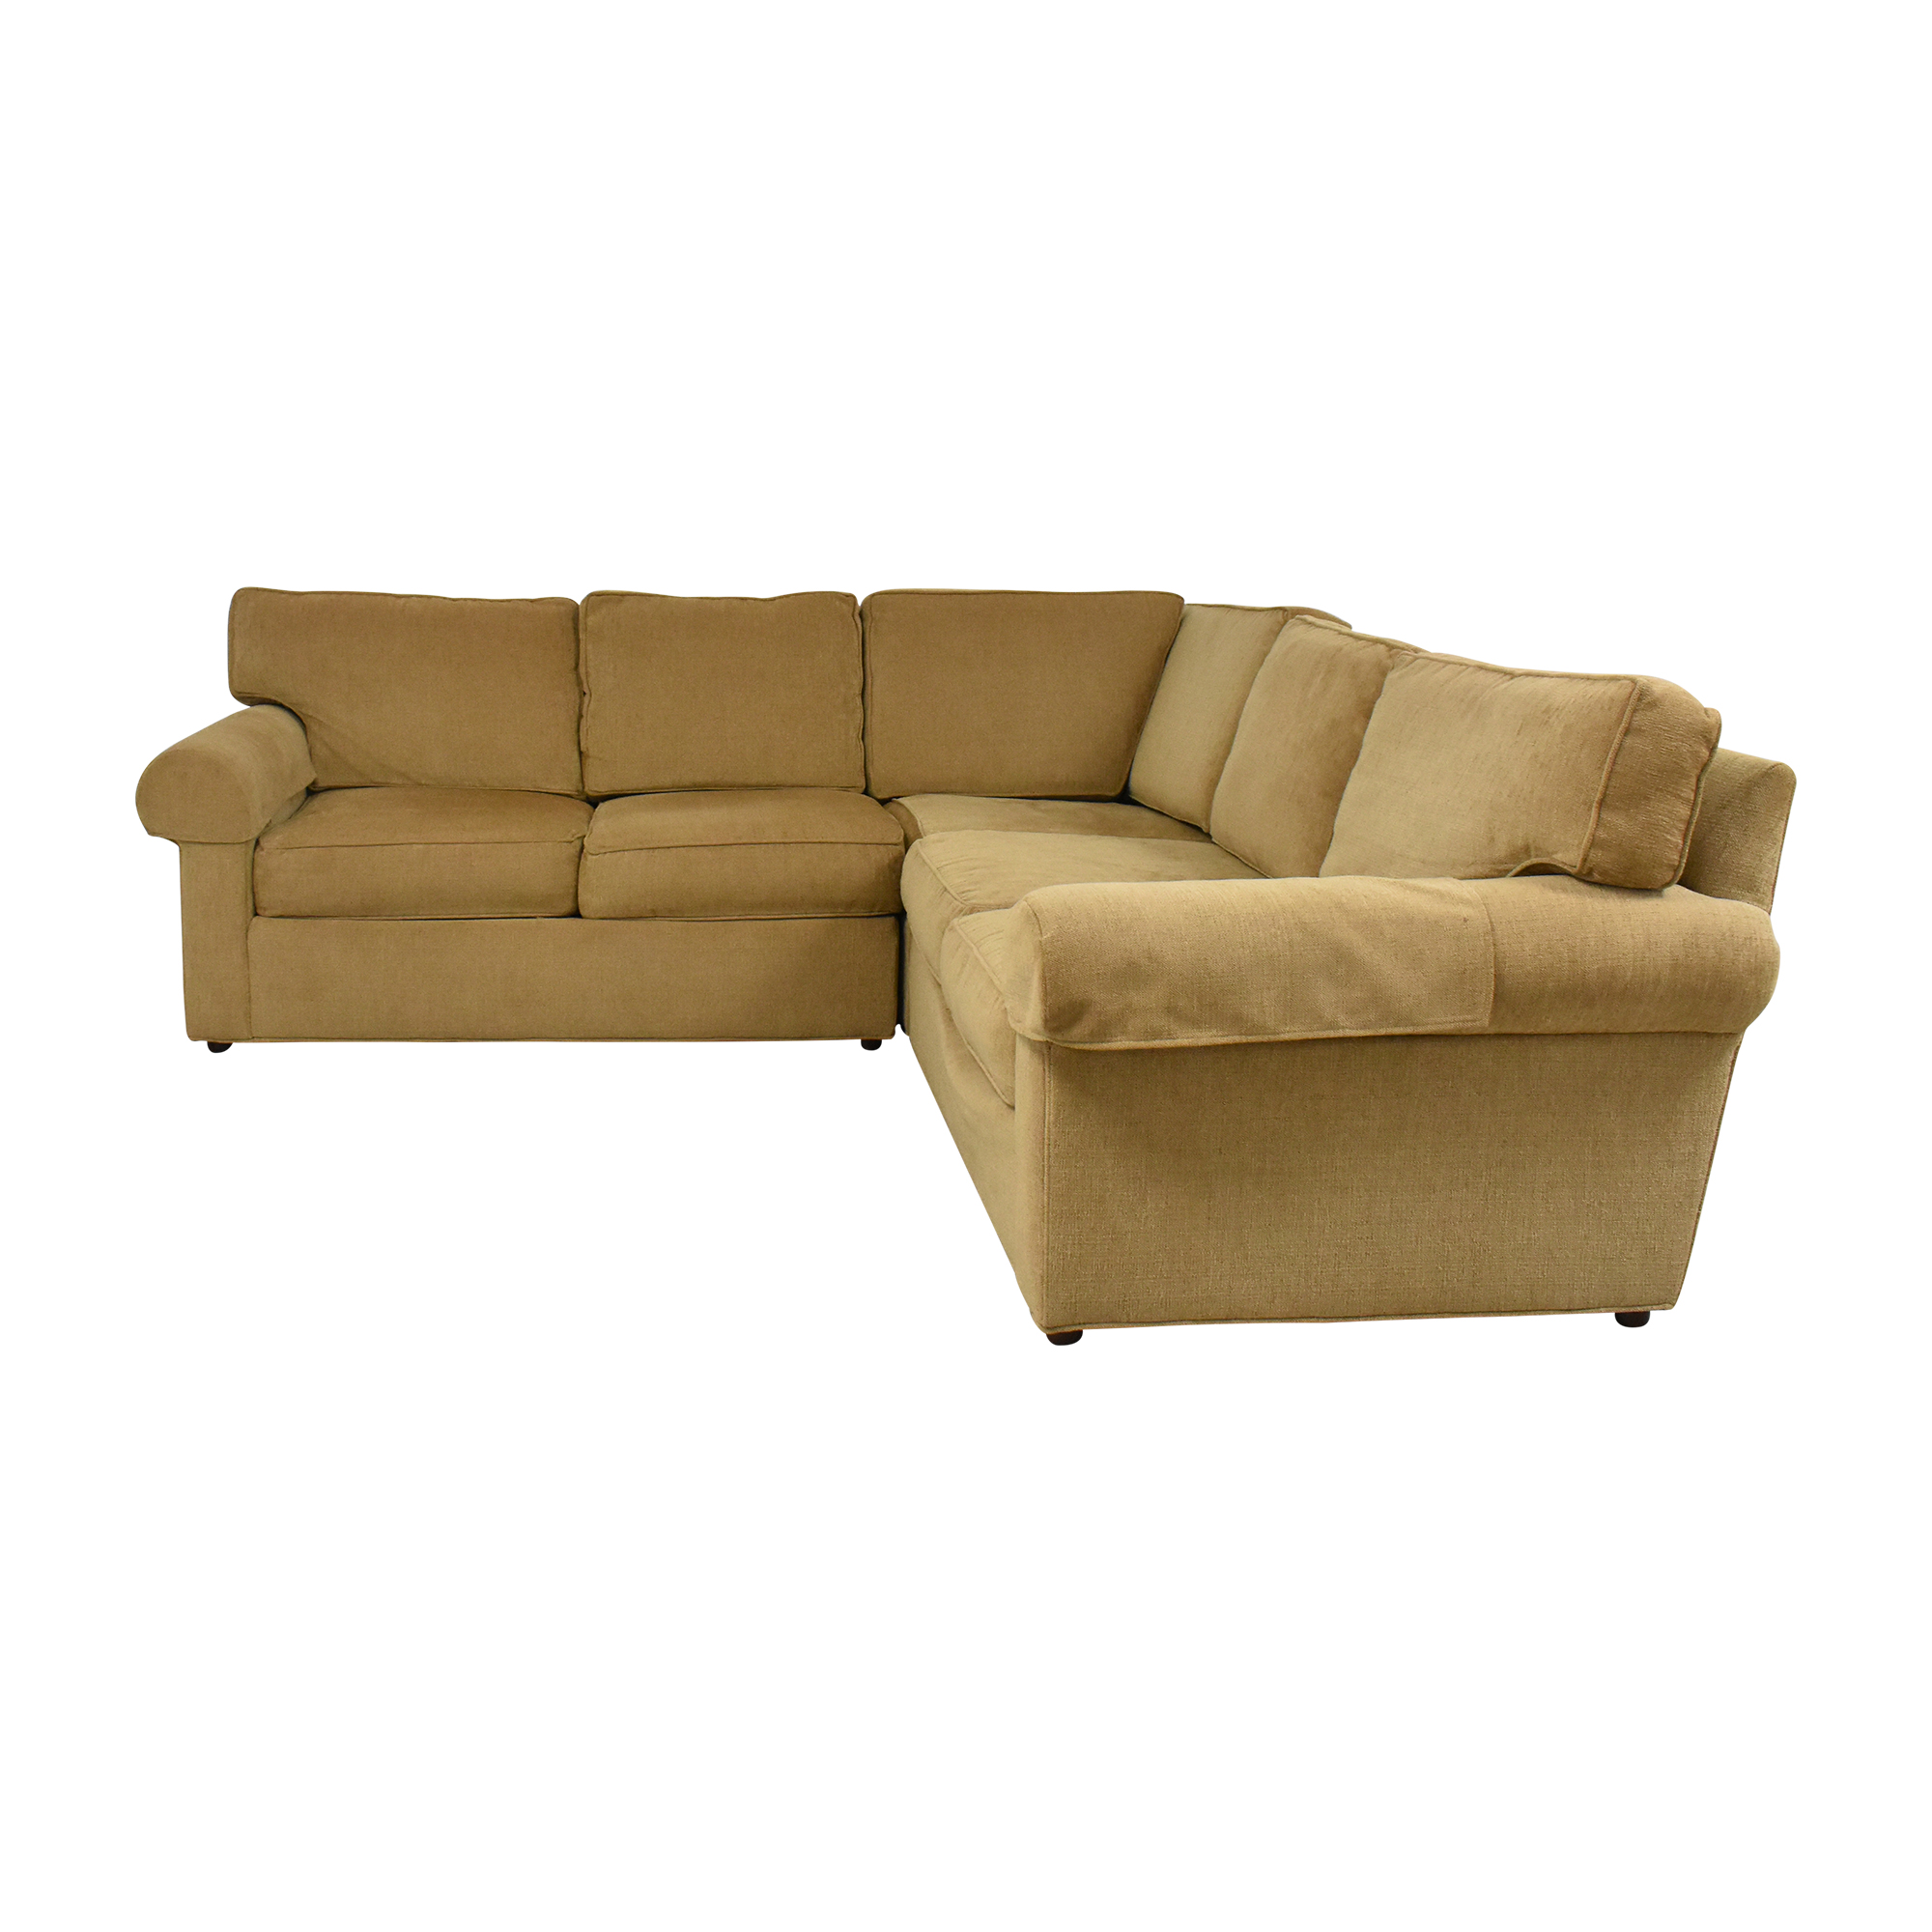 shop Ethan Allen Retreat Roll-Arm Three-Piece Sectional Sofa Ethan Allen Sofas